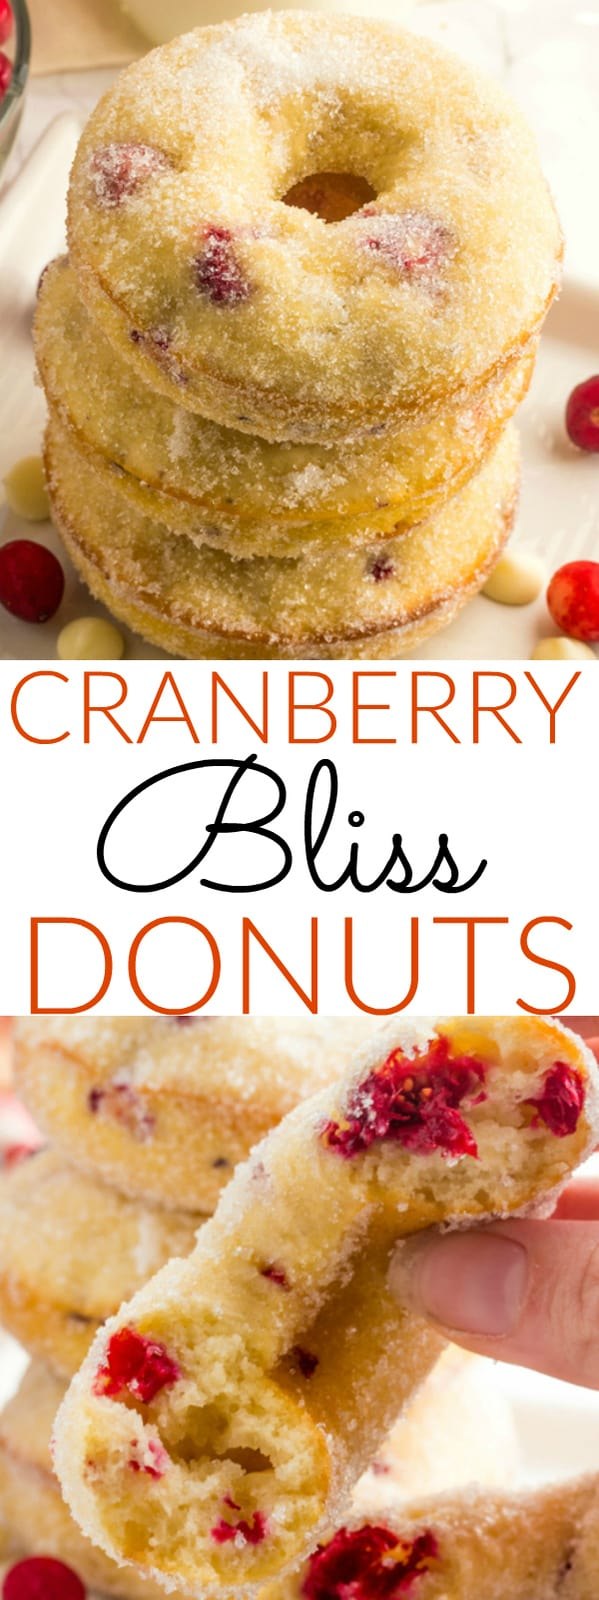 Cranberry Bliss Donuts